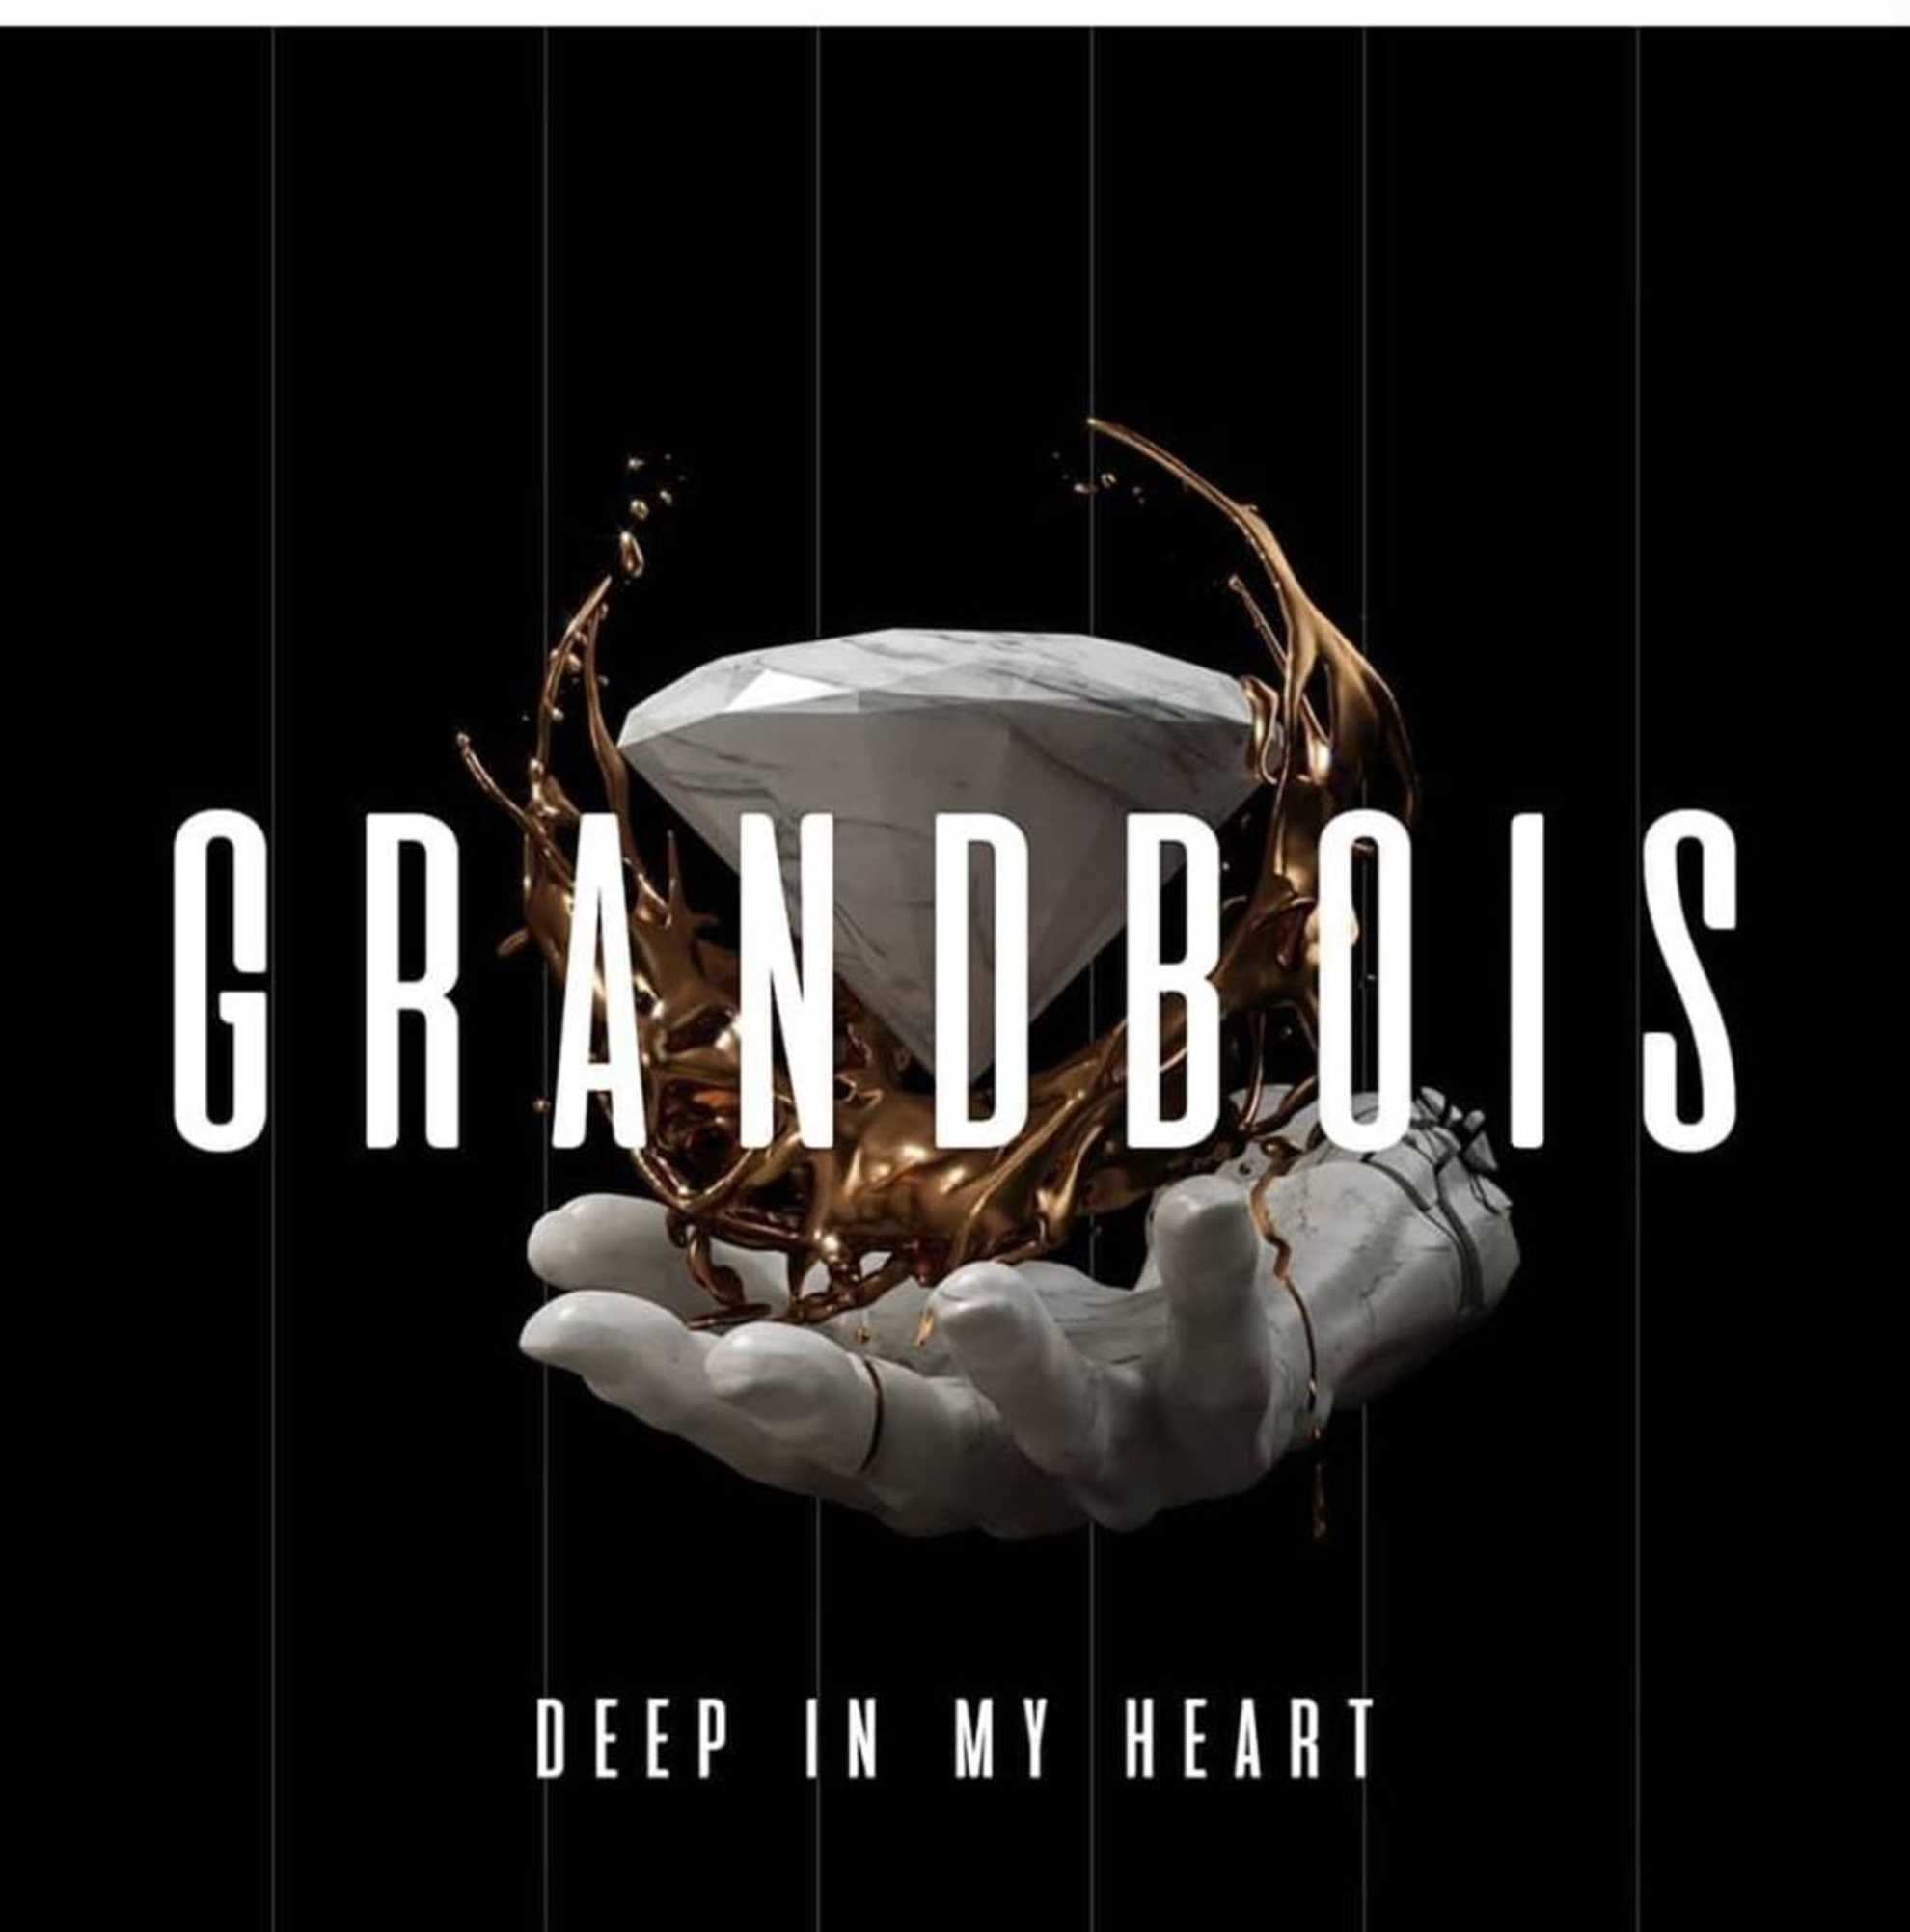 Granbois - Deep in my heart